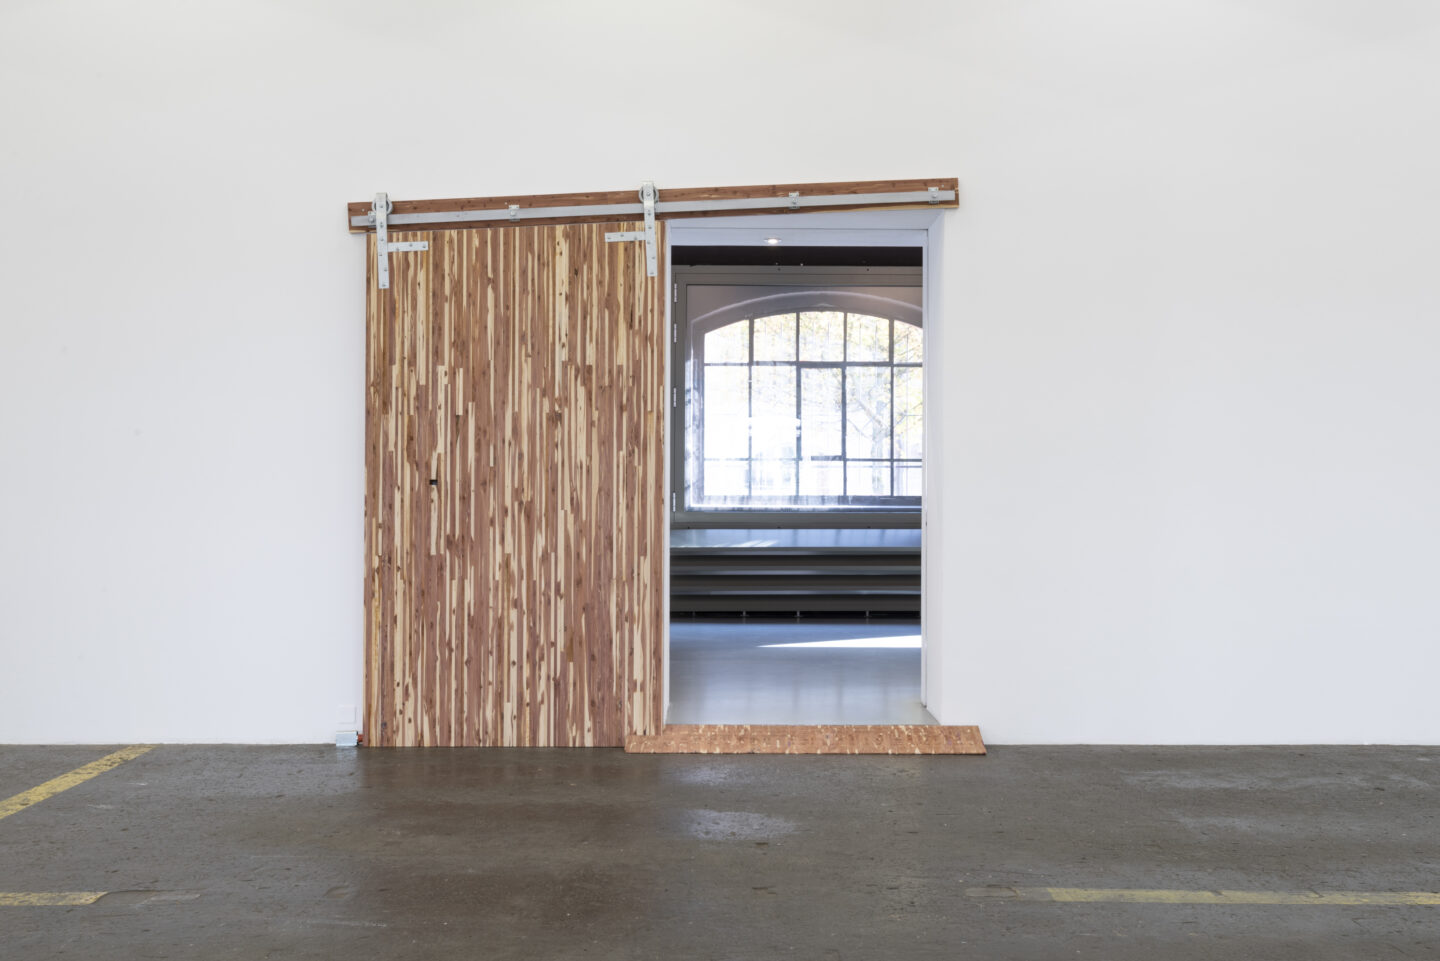 Exhibition View Aaron Flint Jamison Soloshow «Opportunity Zones; view on Opportunity Zone, 2019» at Kunst Halle Sankt Gallen, St. Gallen, 2019 / Photo: Sebastian Schaub / Courtesy: the artist and Kunst Halle Sankt Gallen